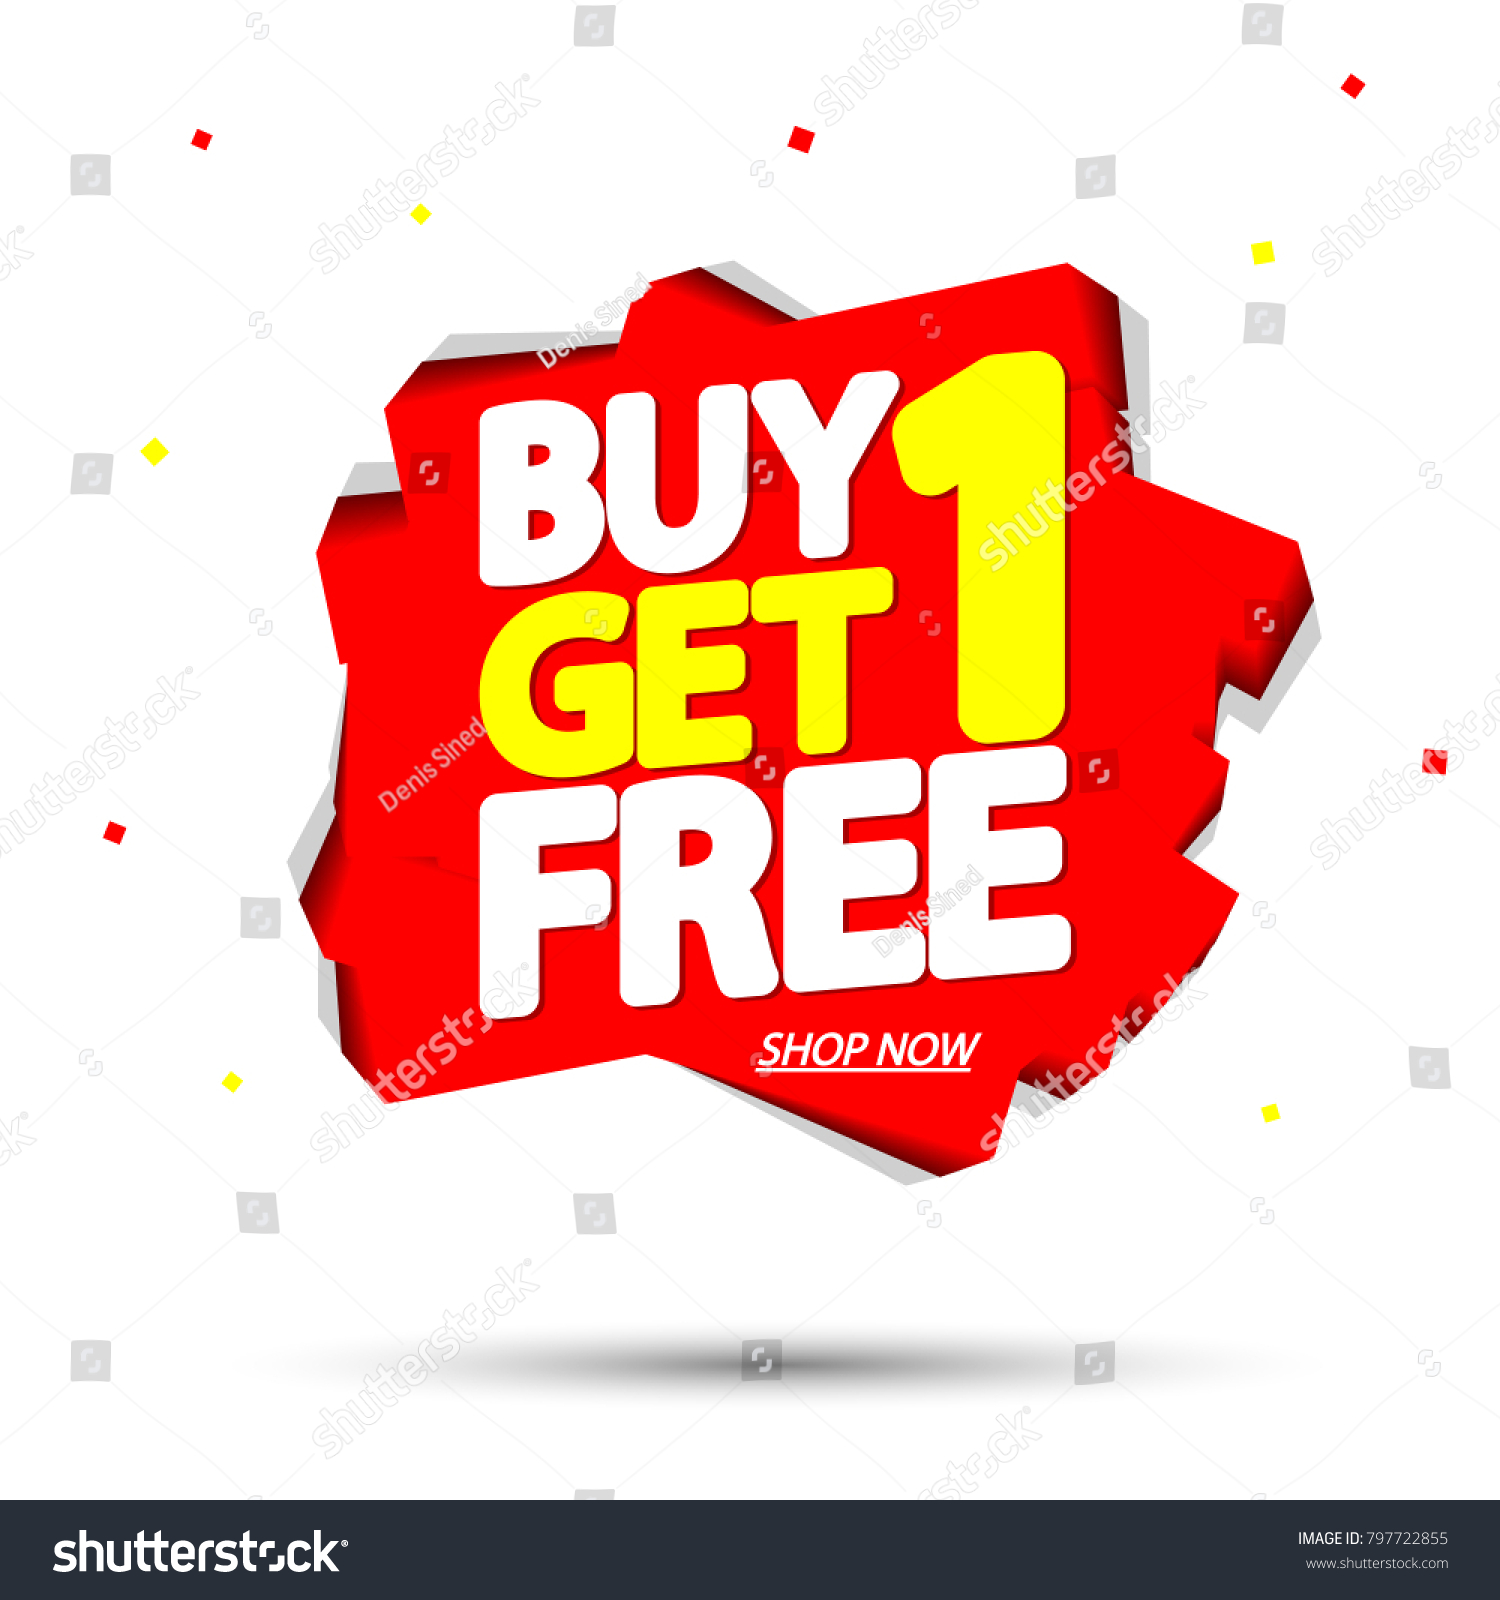 Buy 1 Get 1 Free Sale Stock Vector (Royalty Free) 797722855